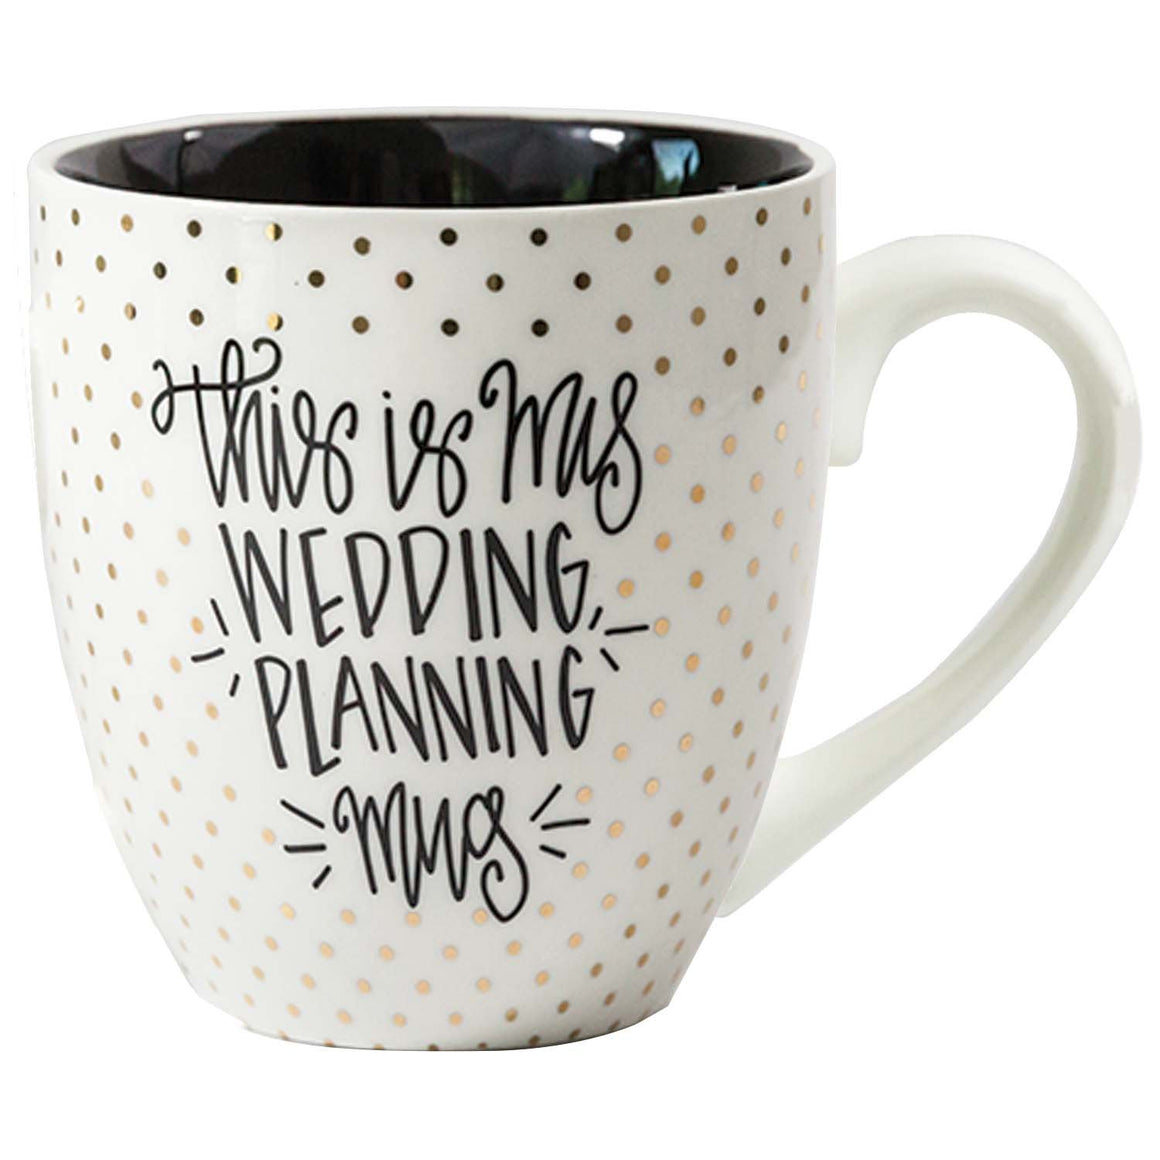 Ceramic Mug Wedding Planning